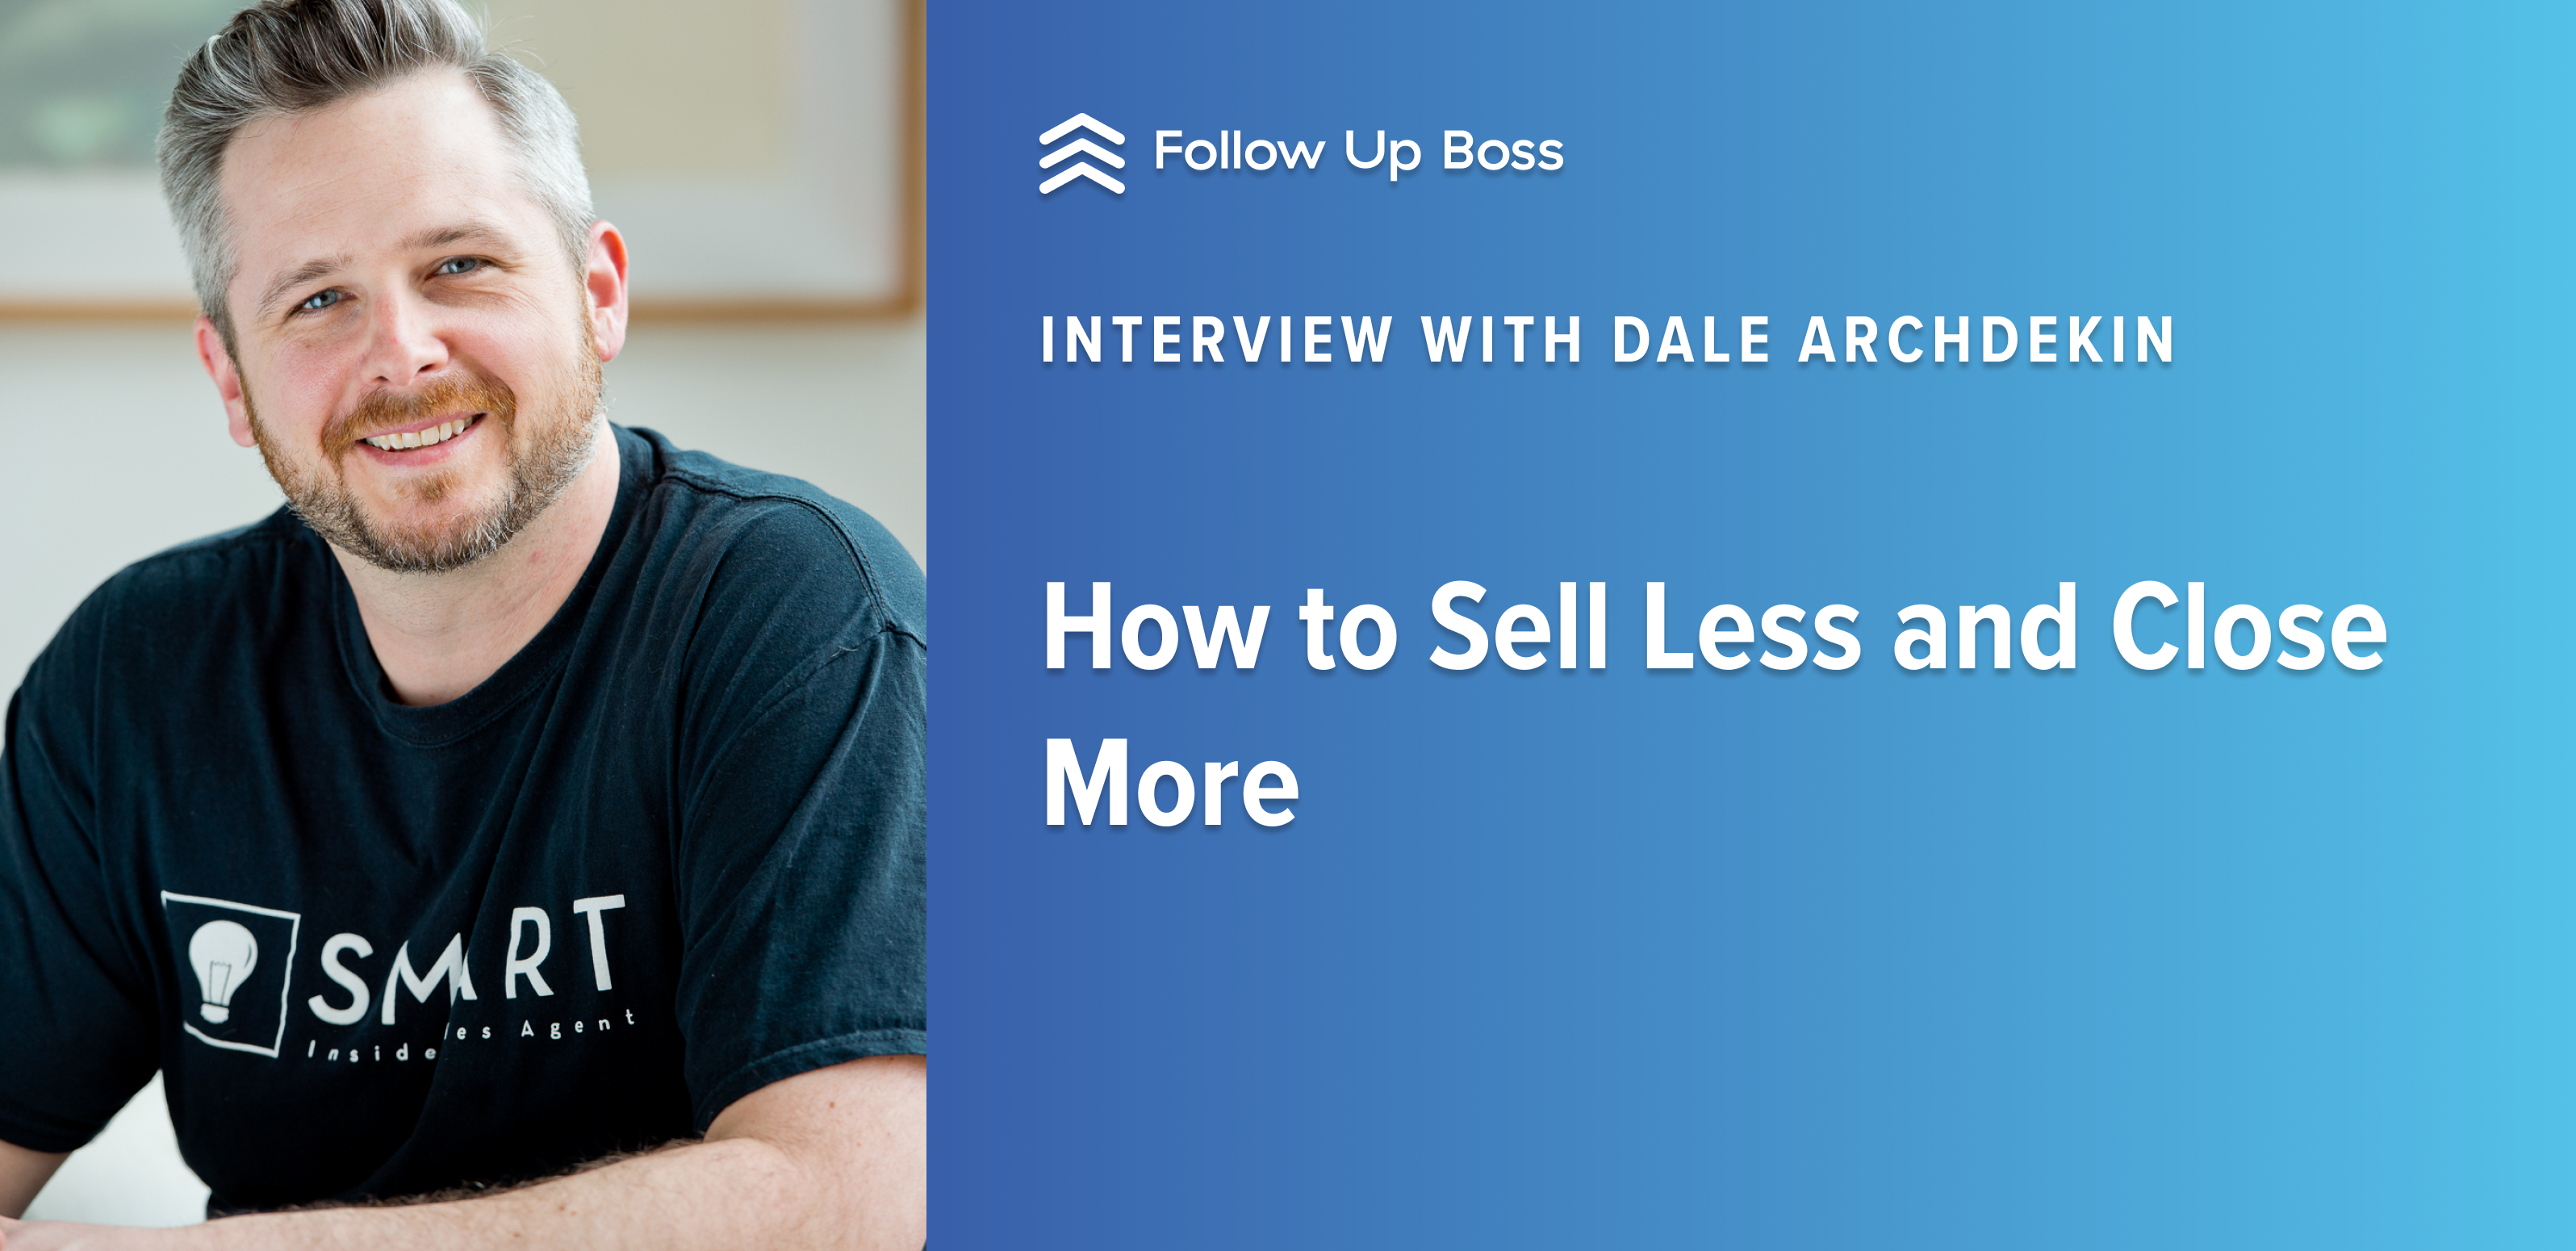 How to Sell Less and Close More—Interview with Dale Archdekin